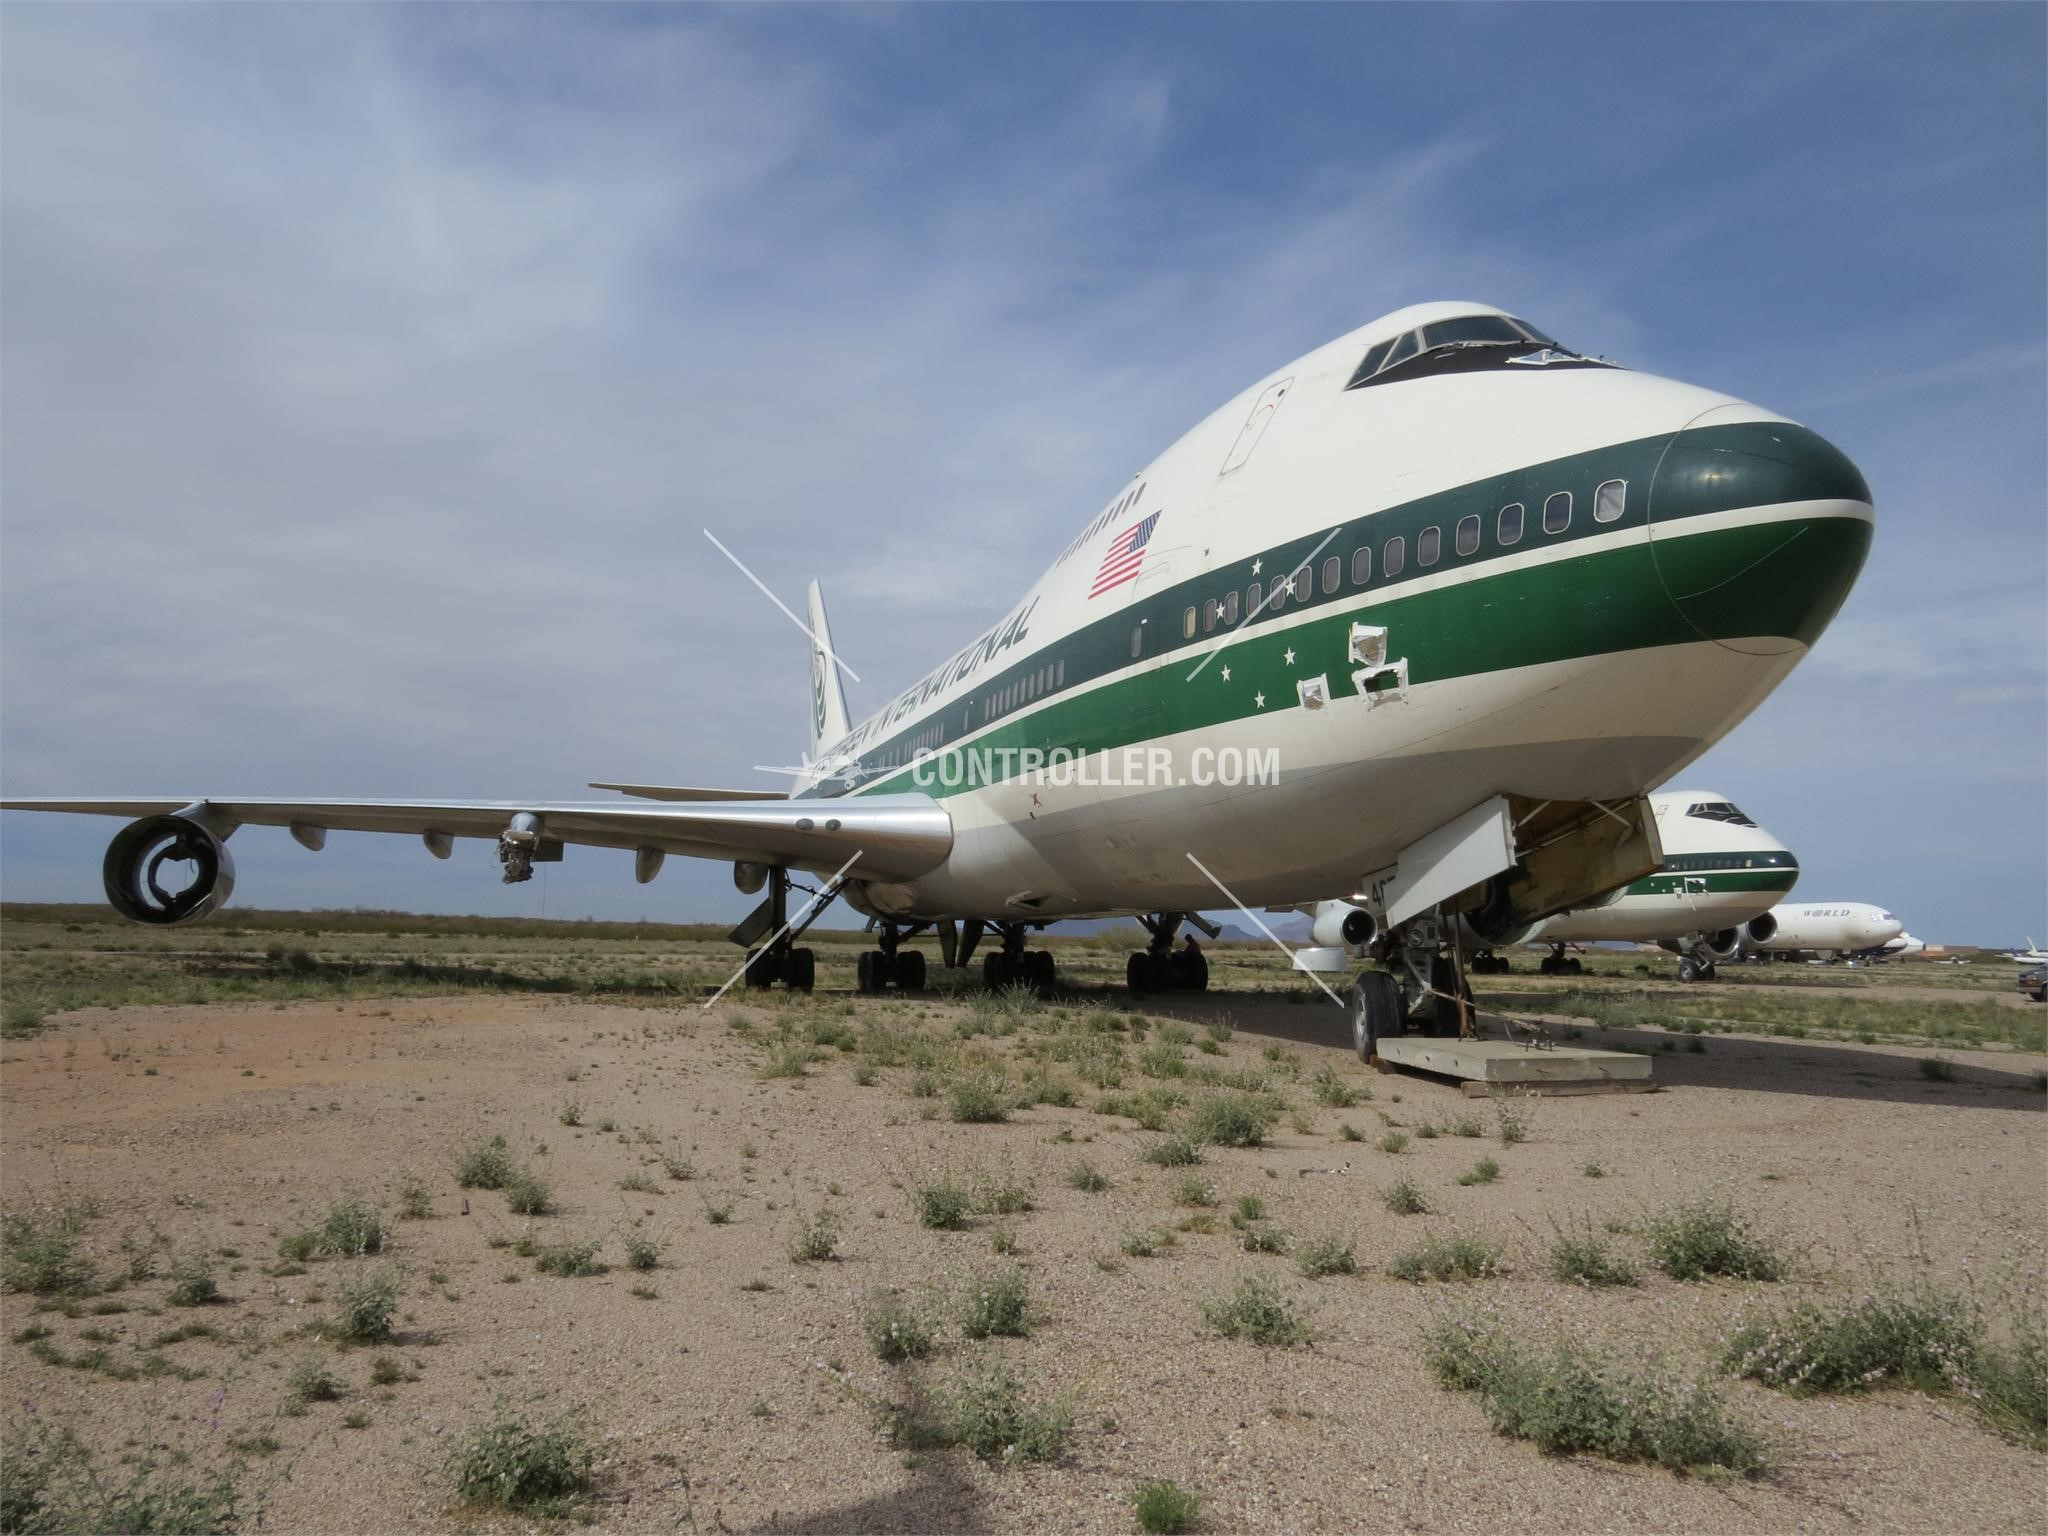 So You Can Buy An Old Soviet Fighter Jet Or A Boeing 747